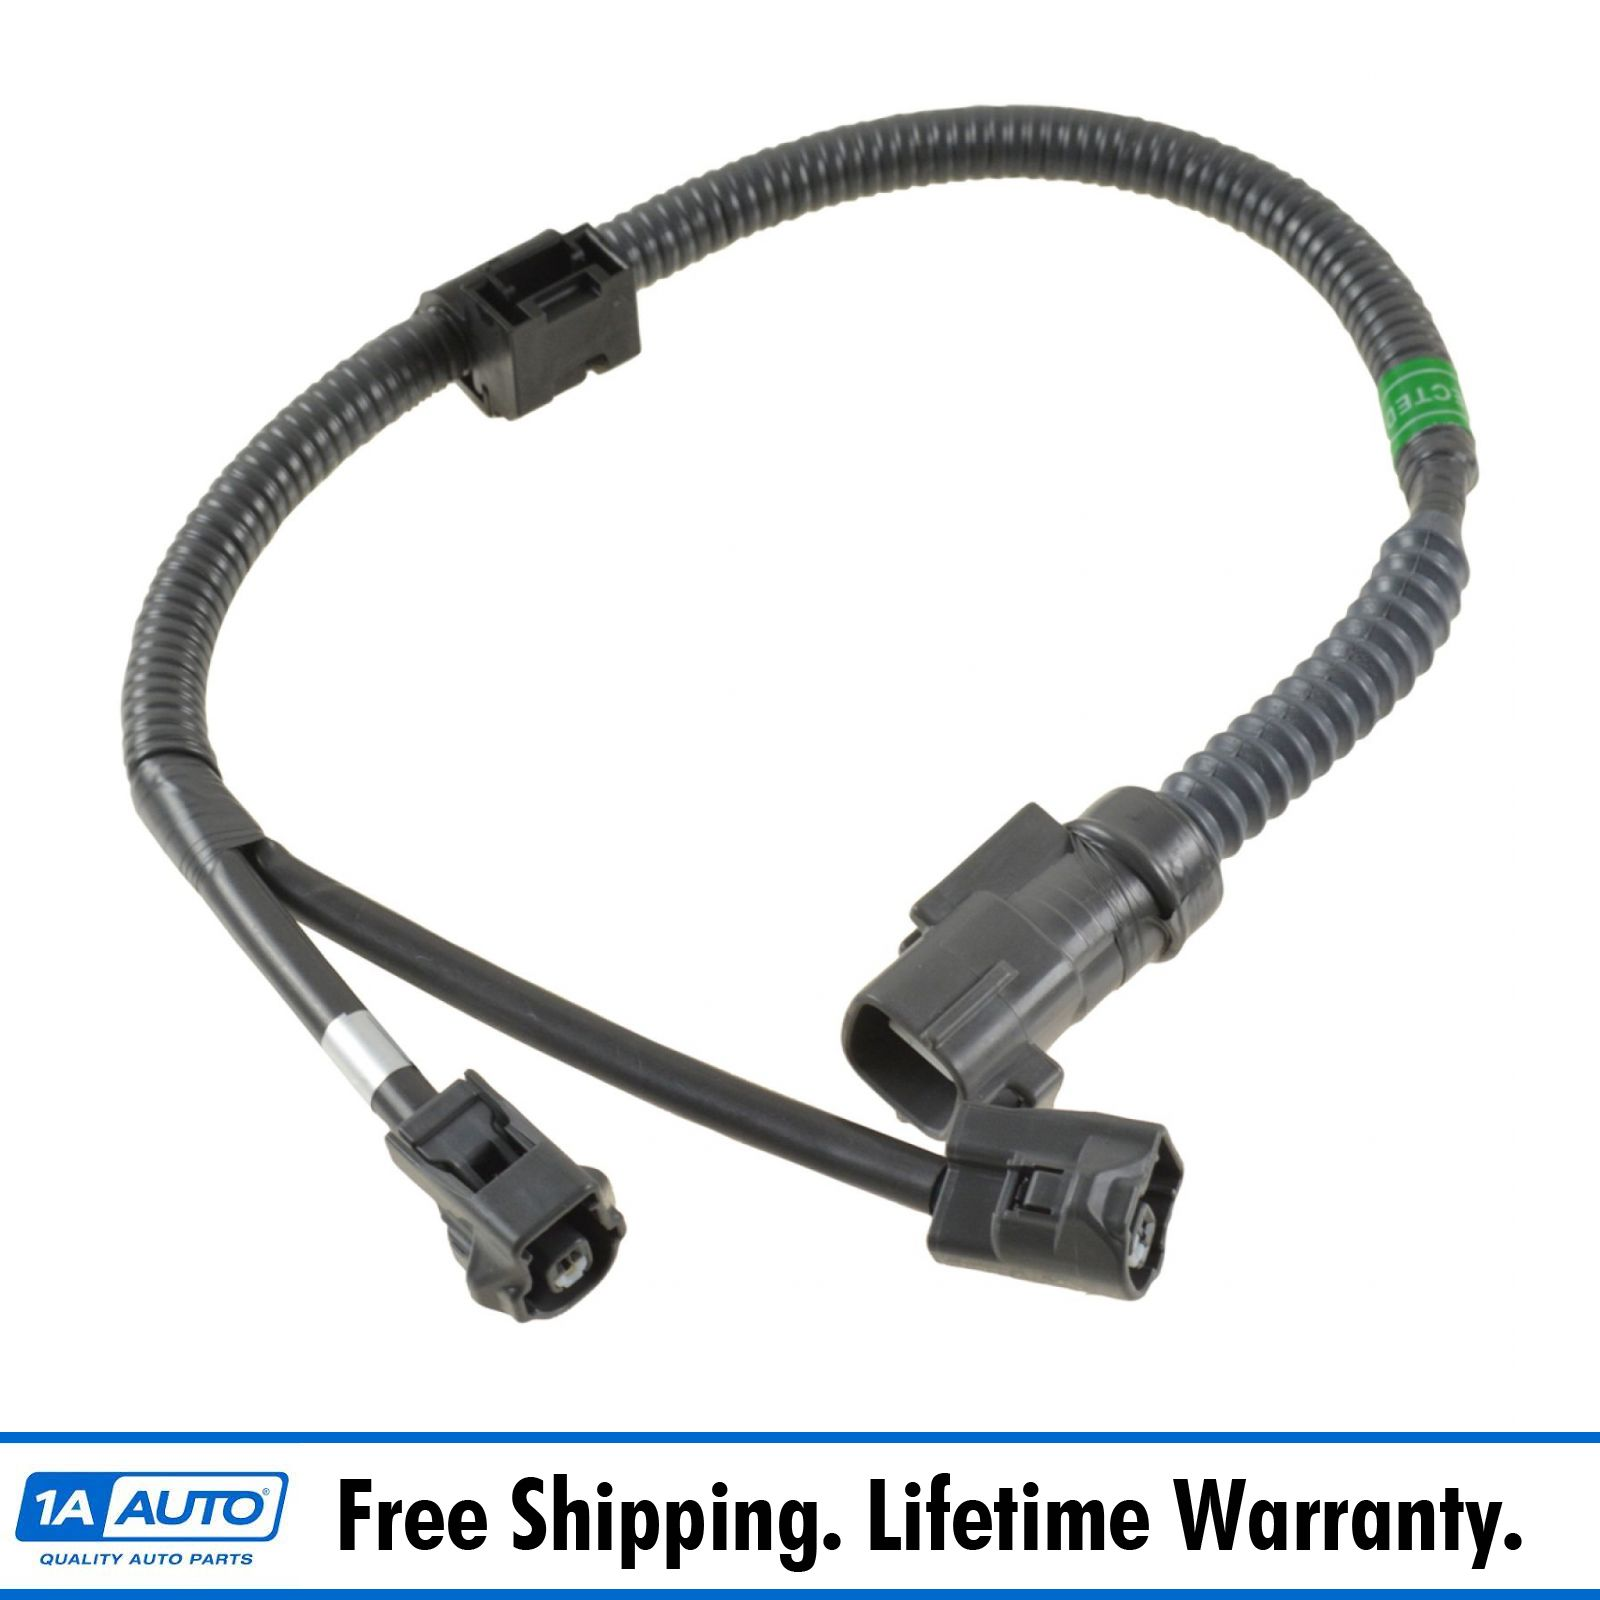 hight resolution of oem engine knock sensor wiring harness pigtail plug for 3 0 toyota toyota exhaust parts image